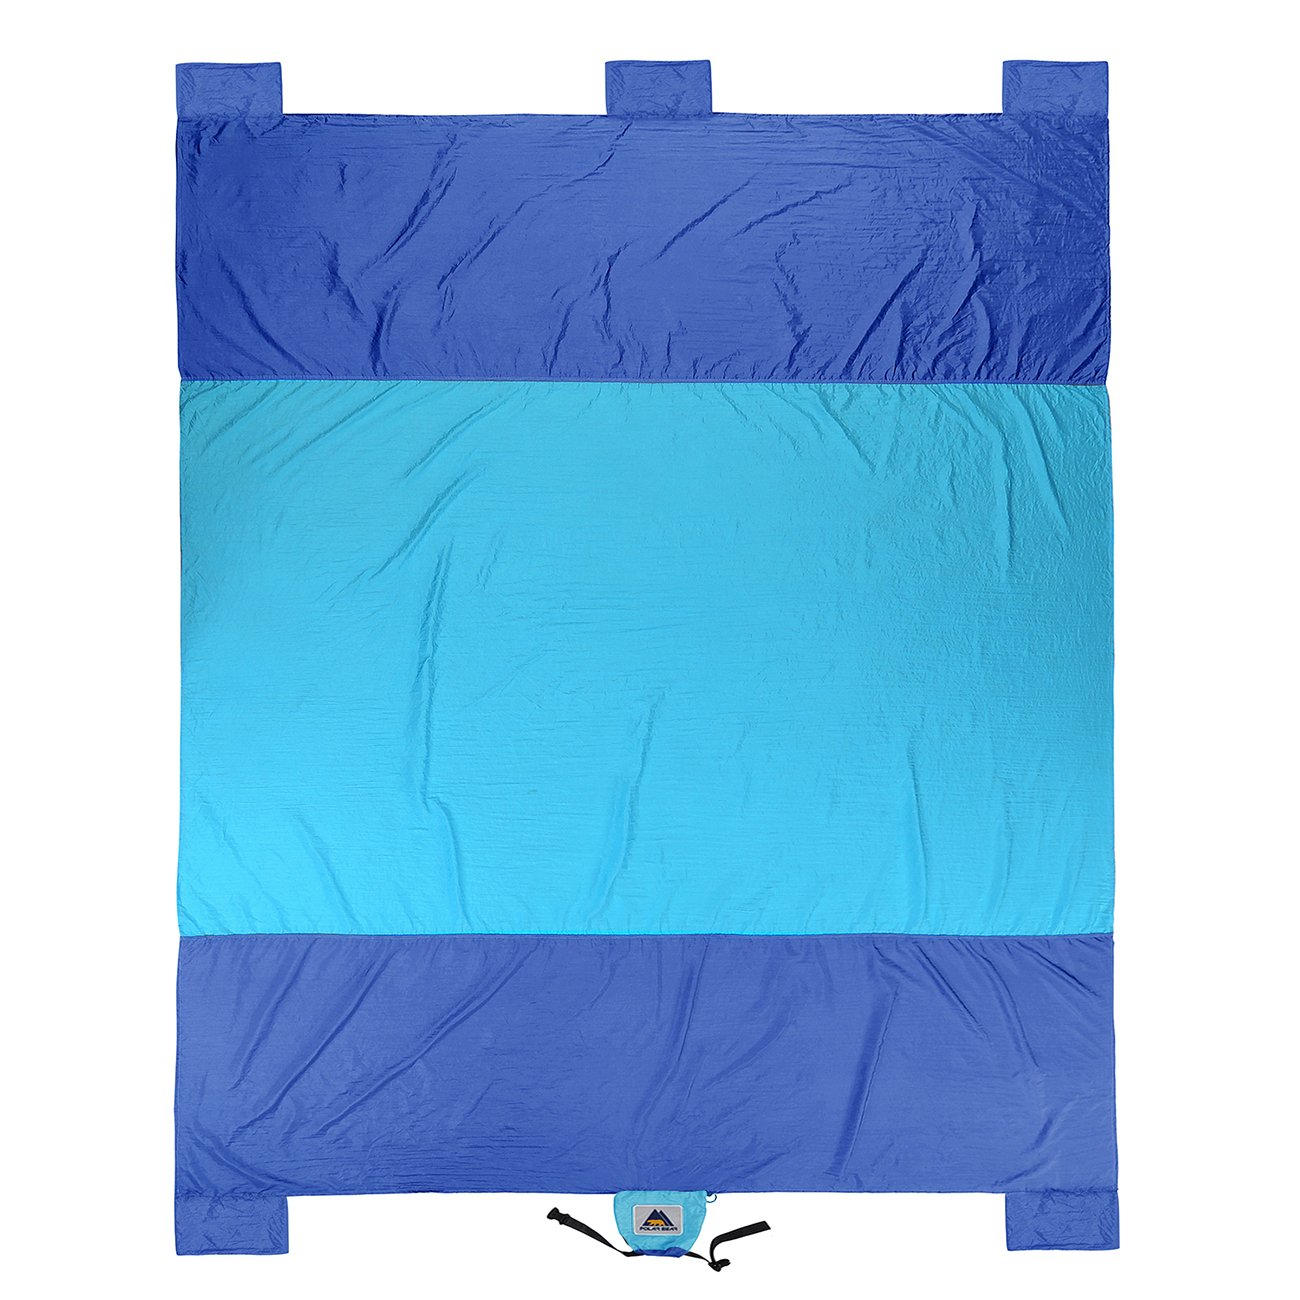 USA PolarBear Compact Outdoor Beach//Picnic Blanket Water Resistant Sand Free Oversized 7 x 9.5 Parachute Nylon Blankets for Travel,Camping,Hiking,Festival,Sports-5 Weightable Pockets